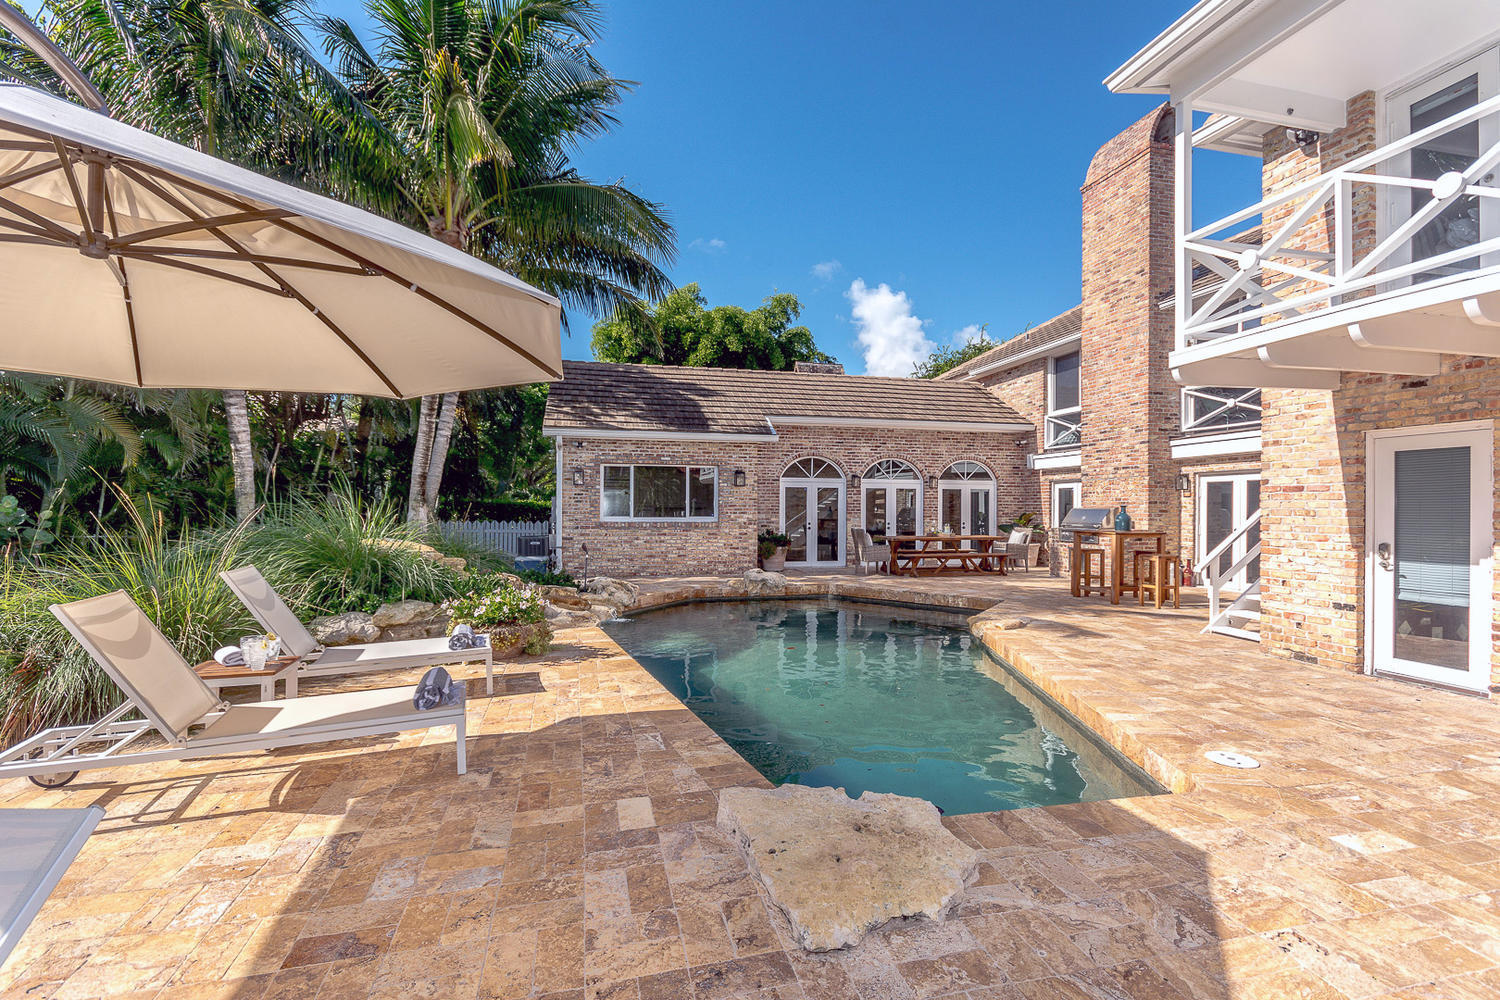 107 Bowsprit Drive, North Palm Beach, Florida 33408, 5 Bedrooms Bedrooms, ,4.1 BathroomsBathrooms,A,Single family,Bowsprit,RX-10483230